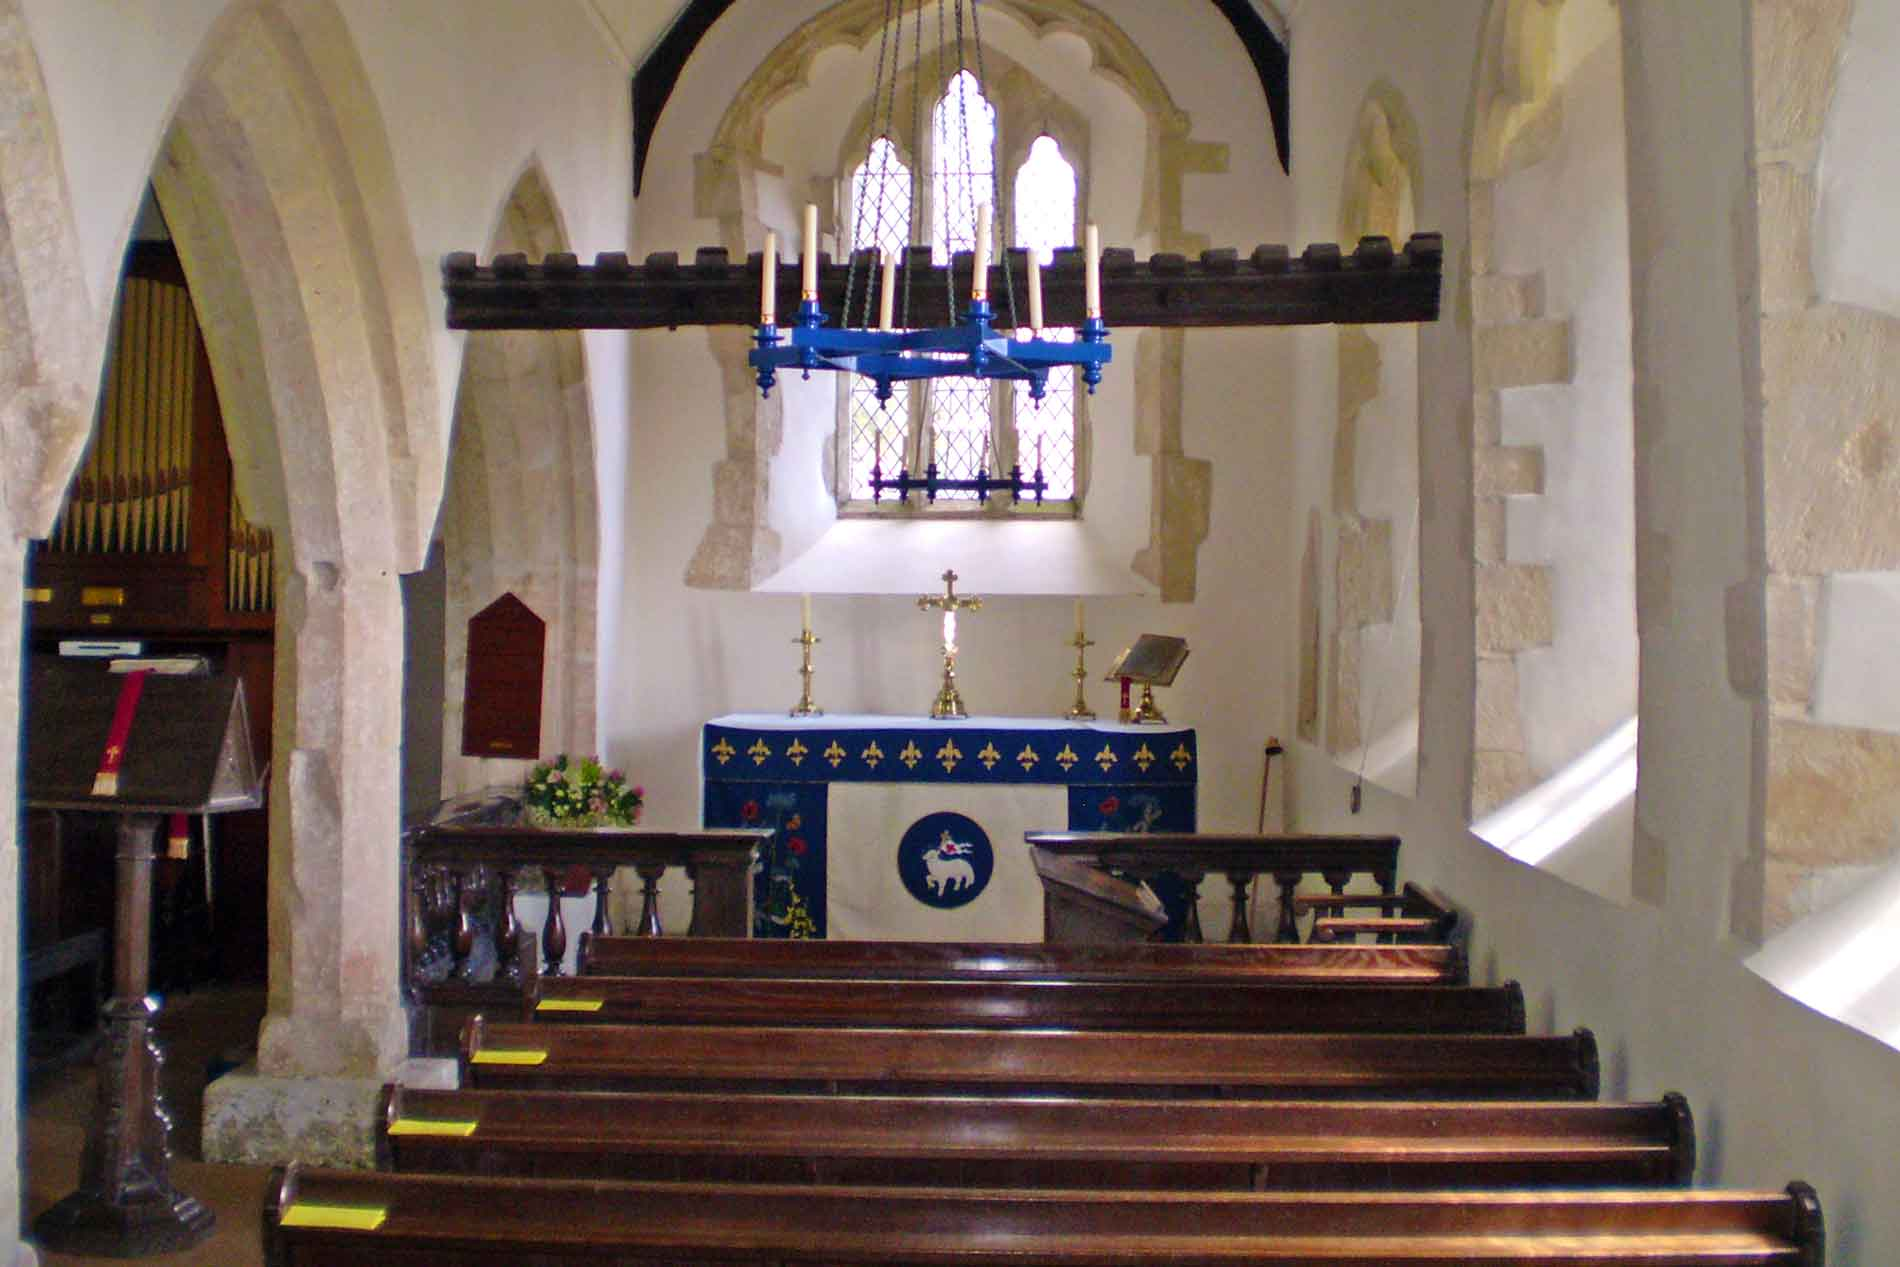 The Interior of St. Michael and All Angels, Little Badminton